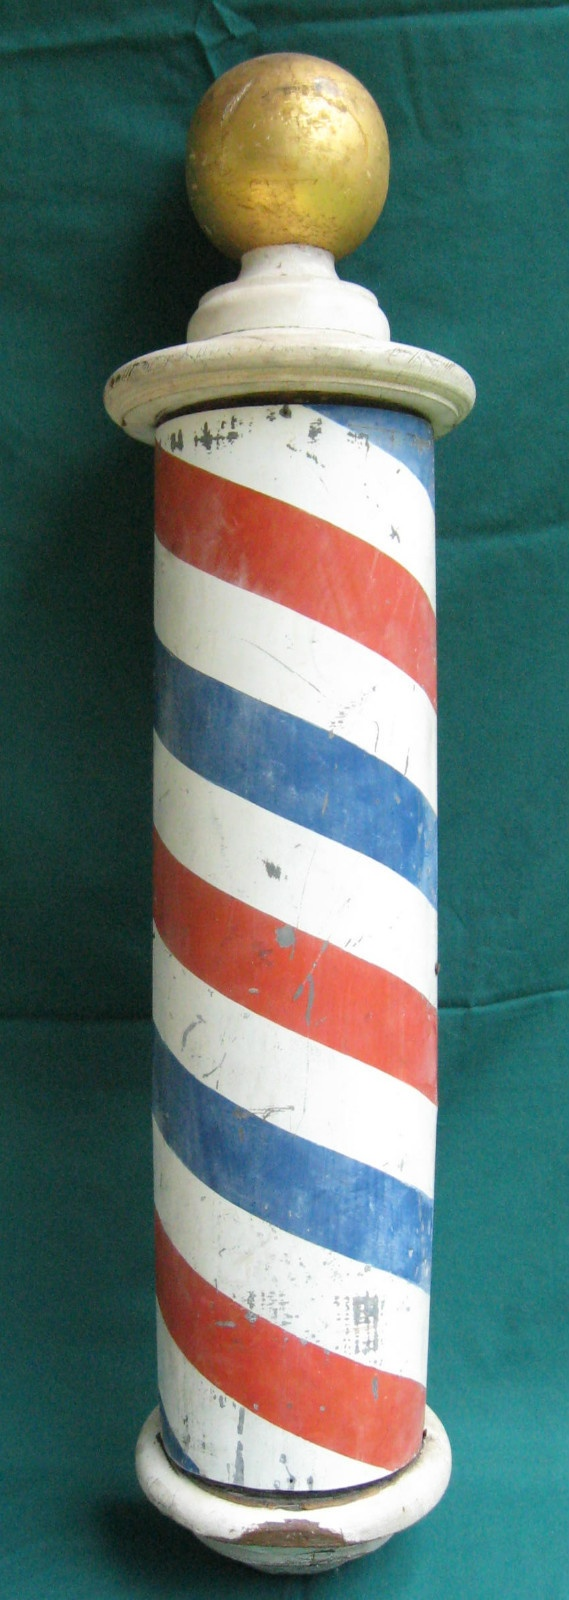 Vintage Barber Pole decorative advertising sign   eBay - We get haircuts at our July 4th gathering!!!